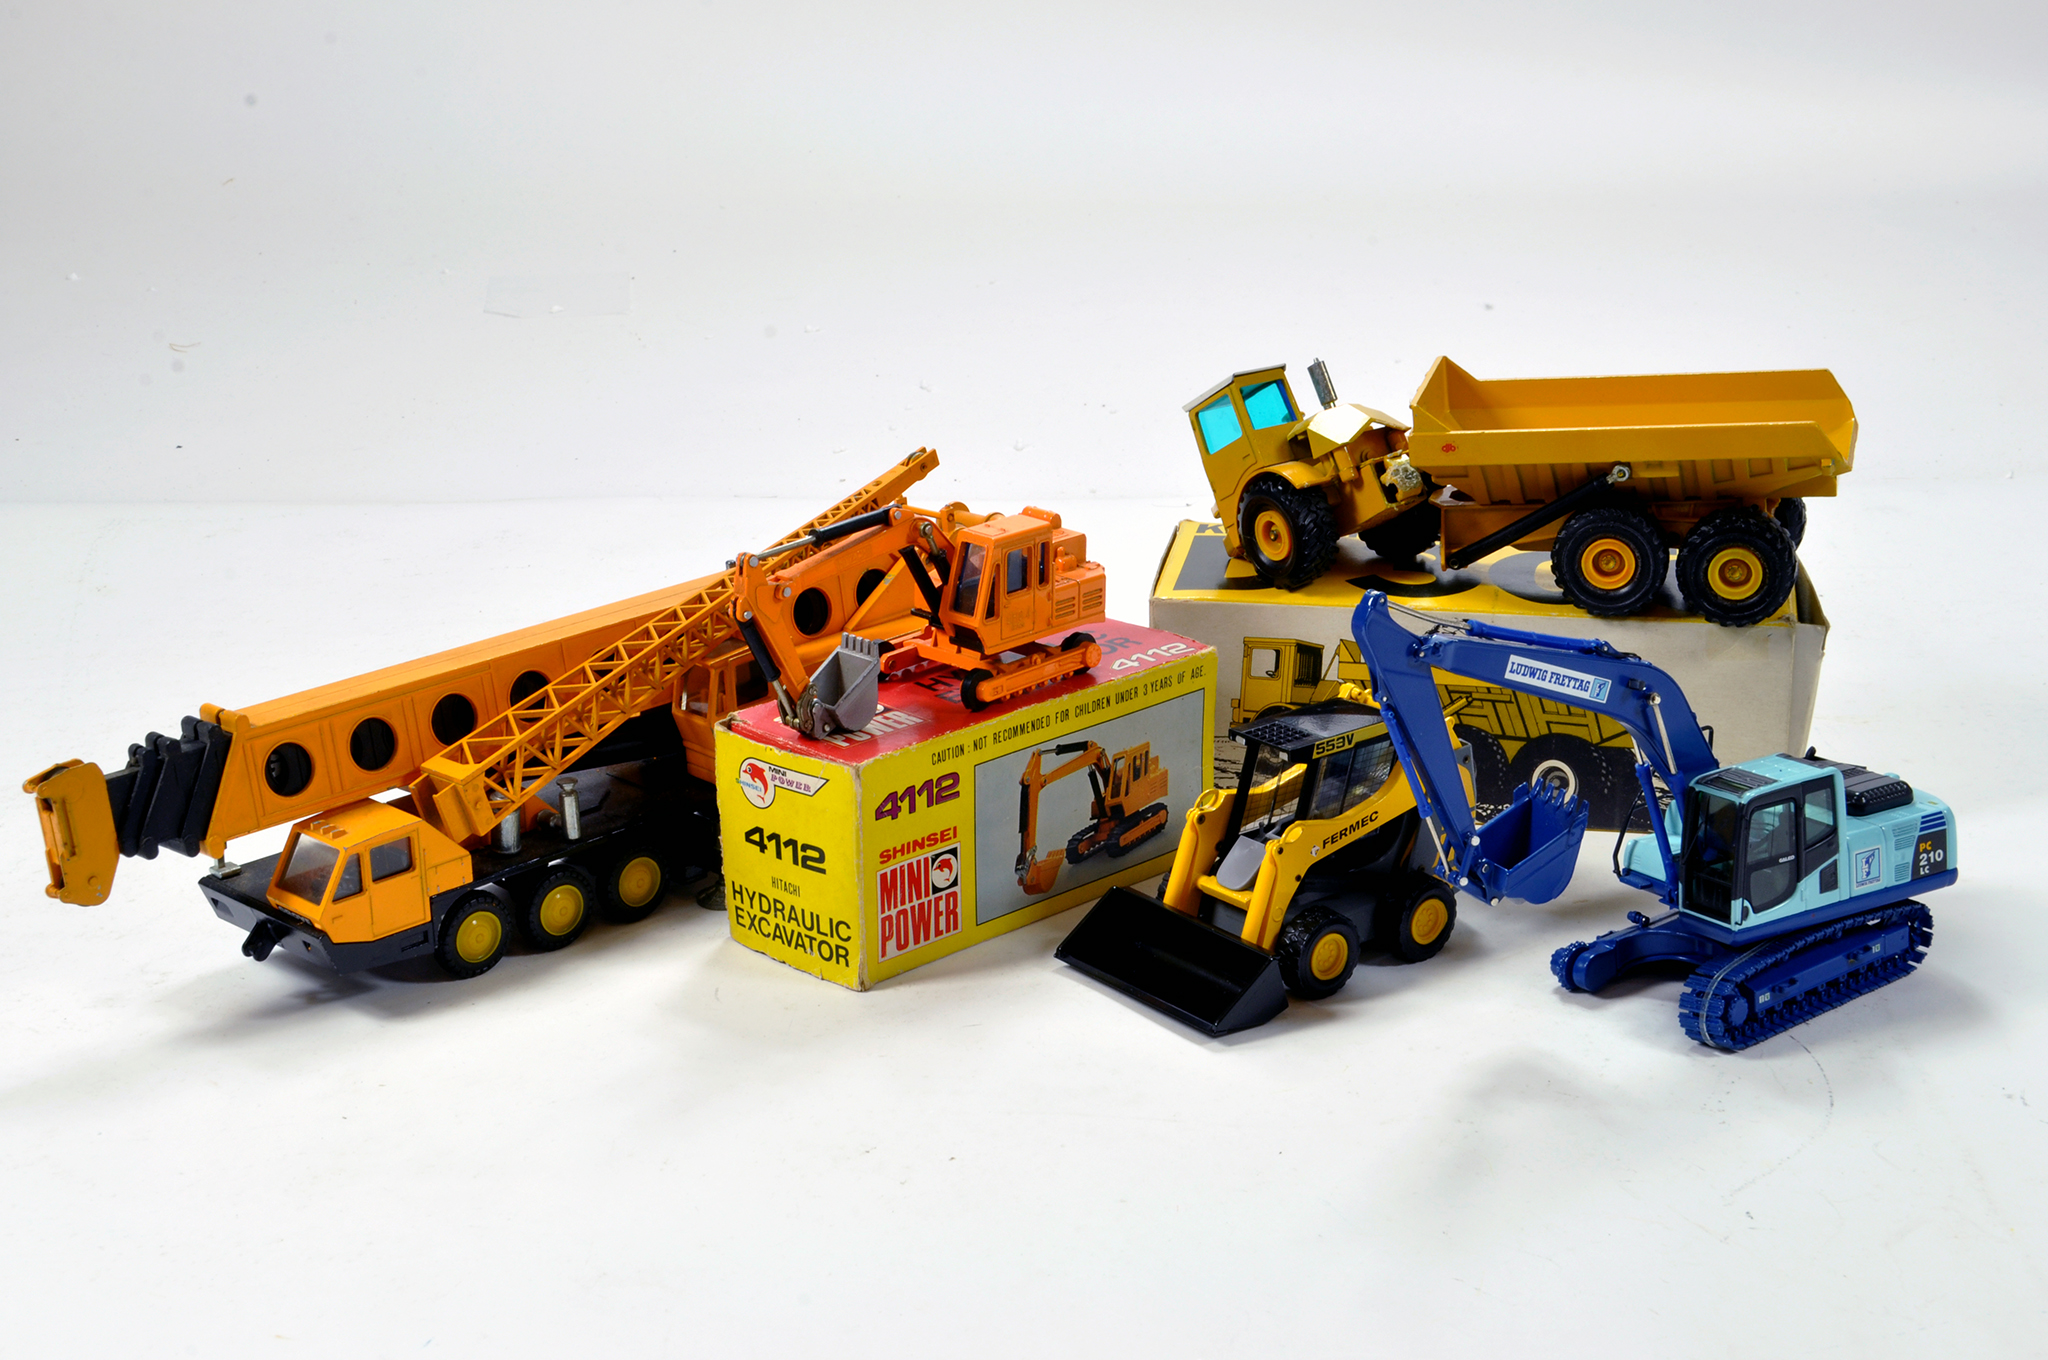 Lot 652 - Assorted Construction diecast issues from various makers including Shinsei, Conrad, NZG etc.